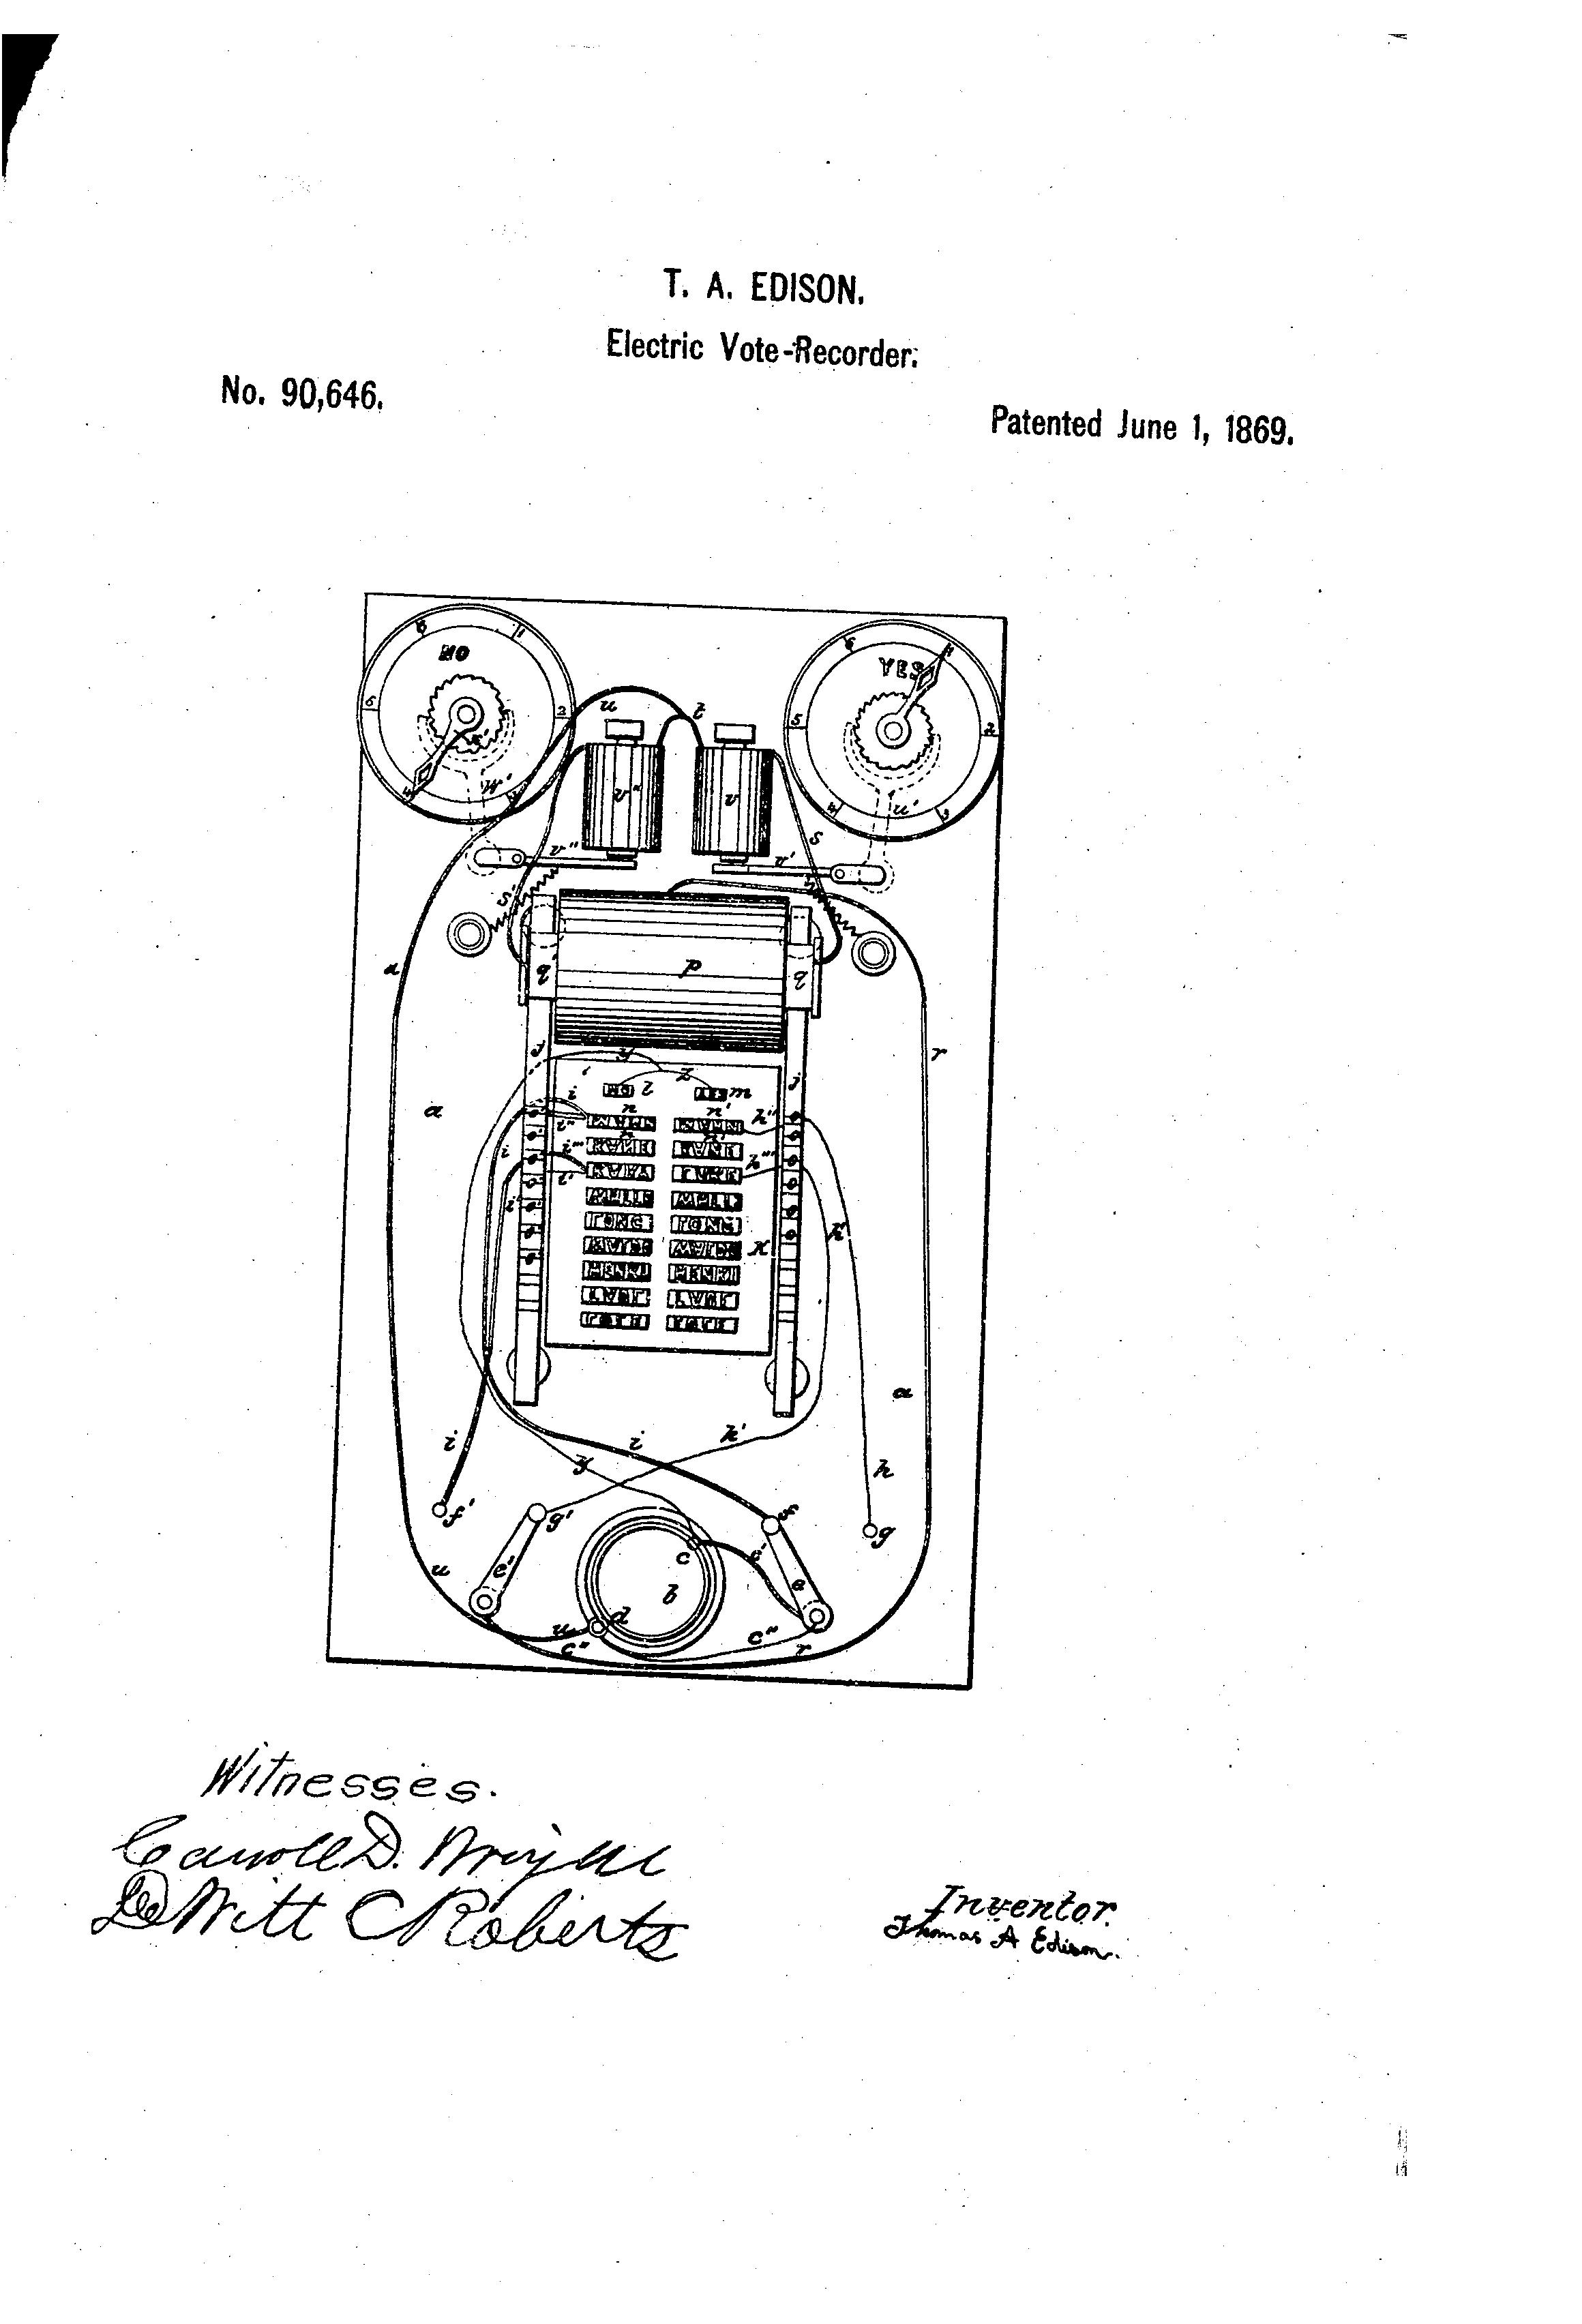 Thomas Edison's first patent for the Electric Vote Counter.